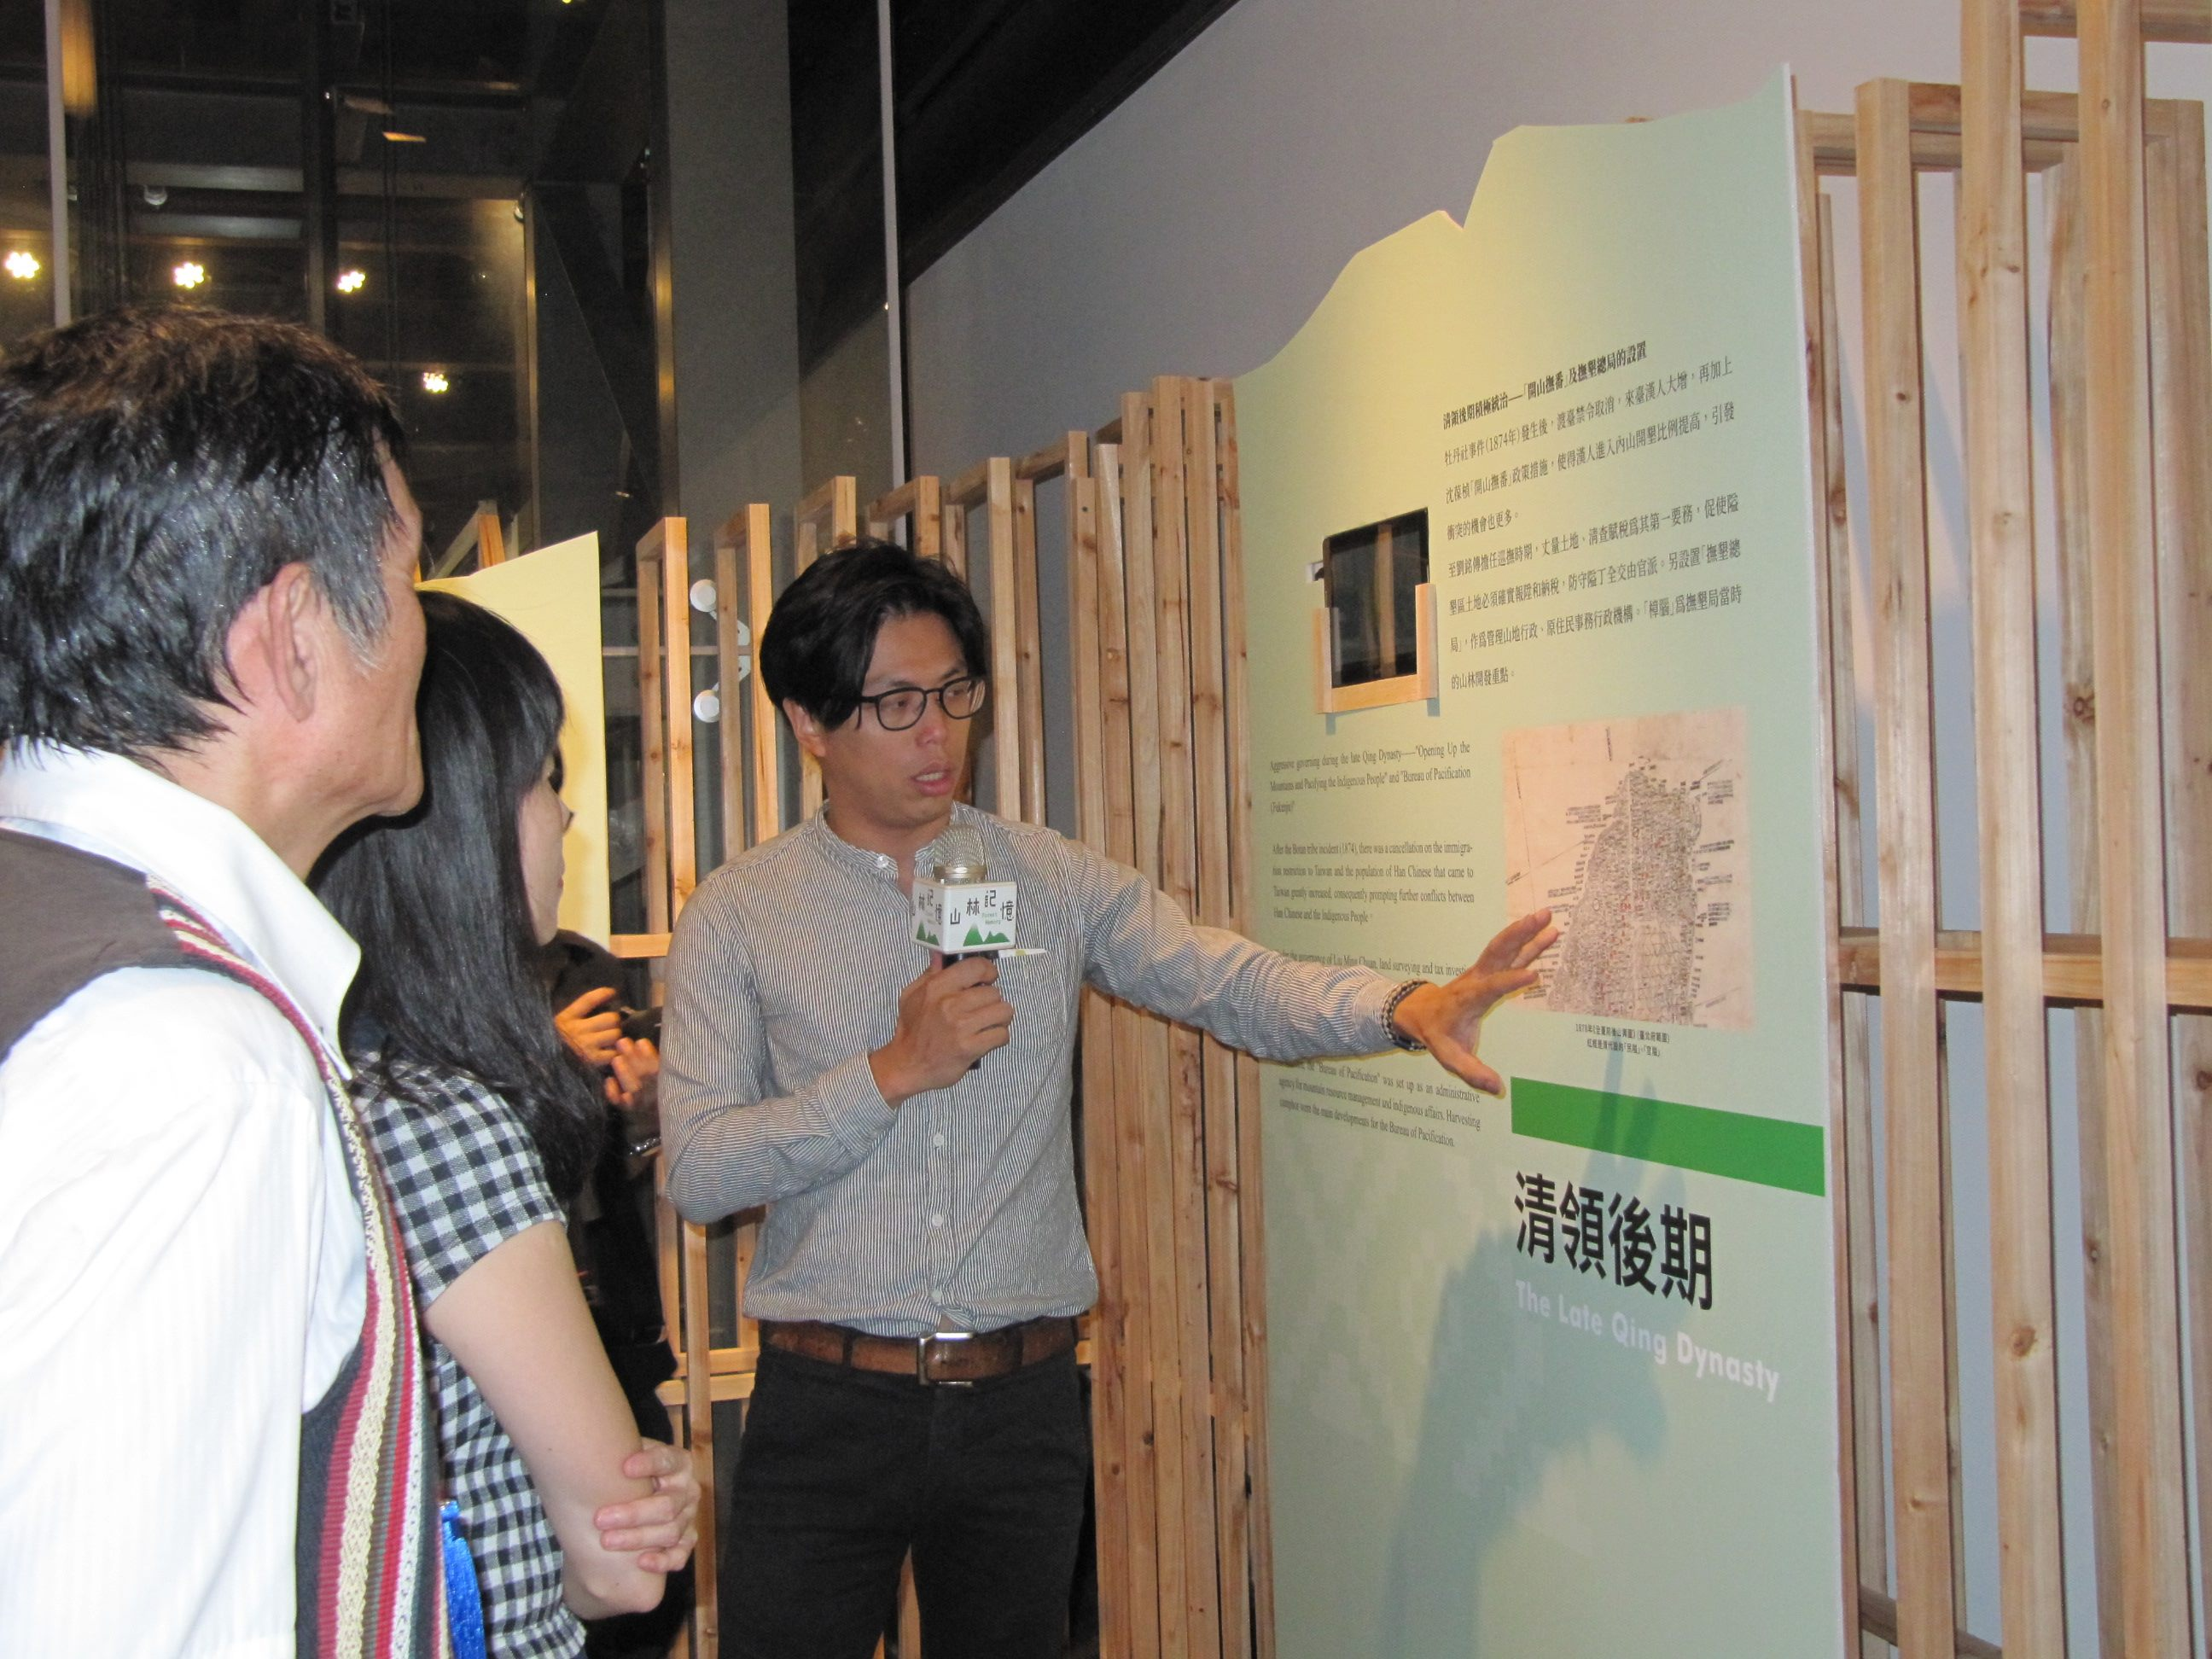 The curator Wu Szu-ju guides visitors through the special exhibition